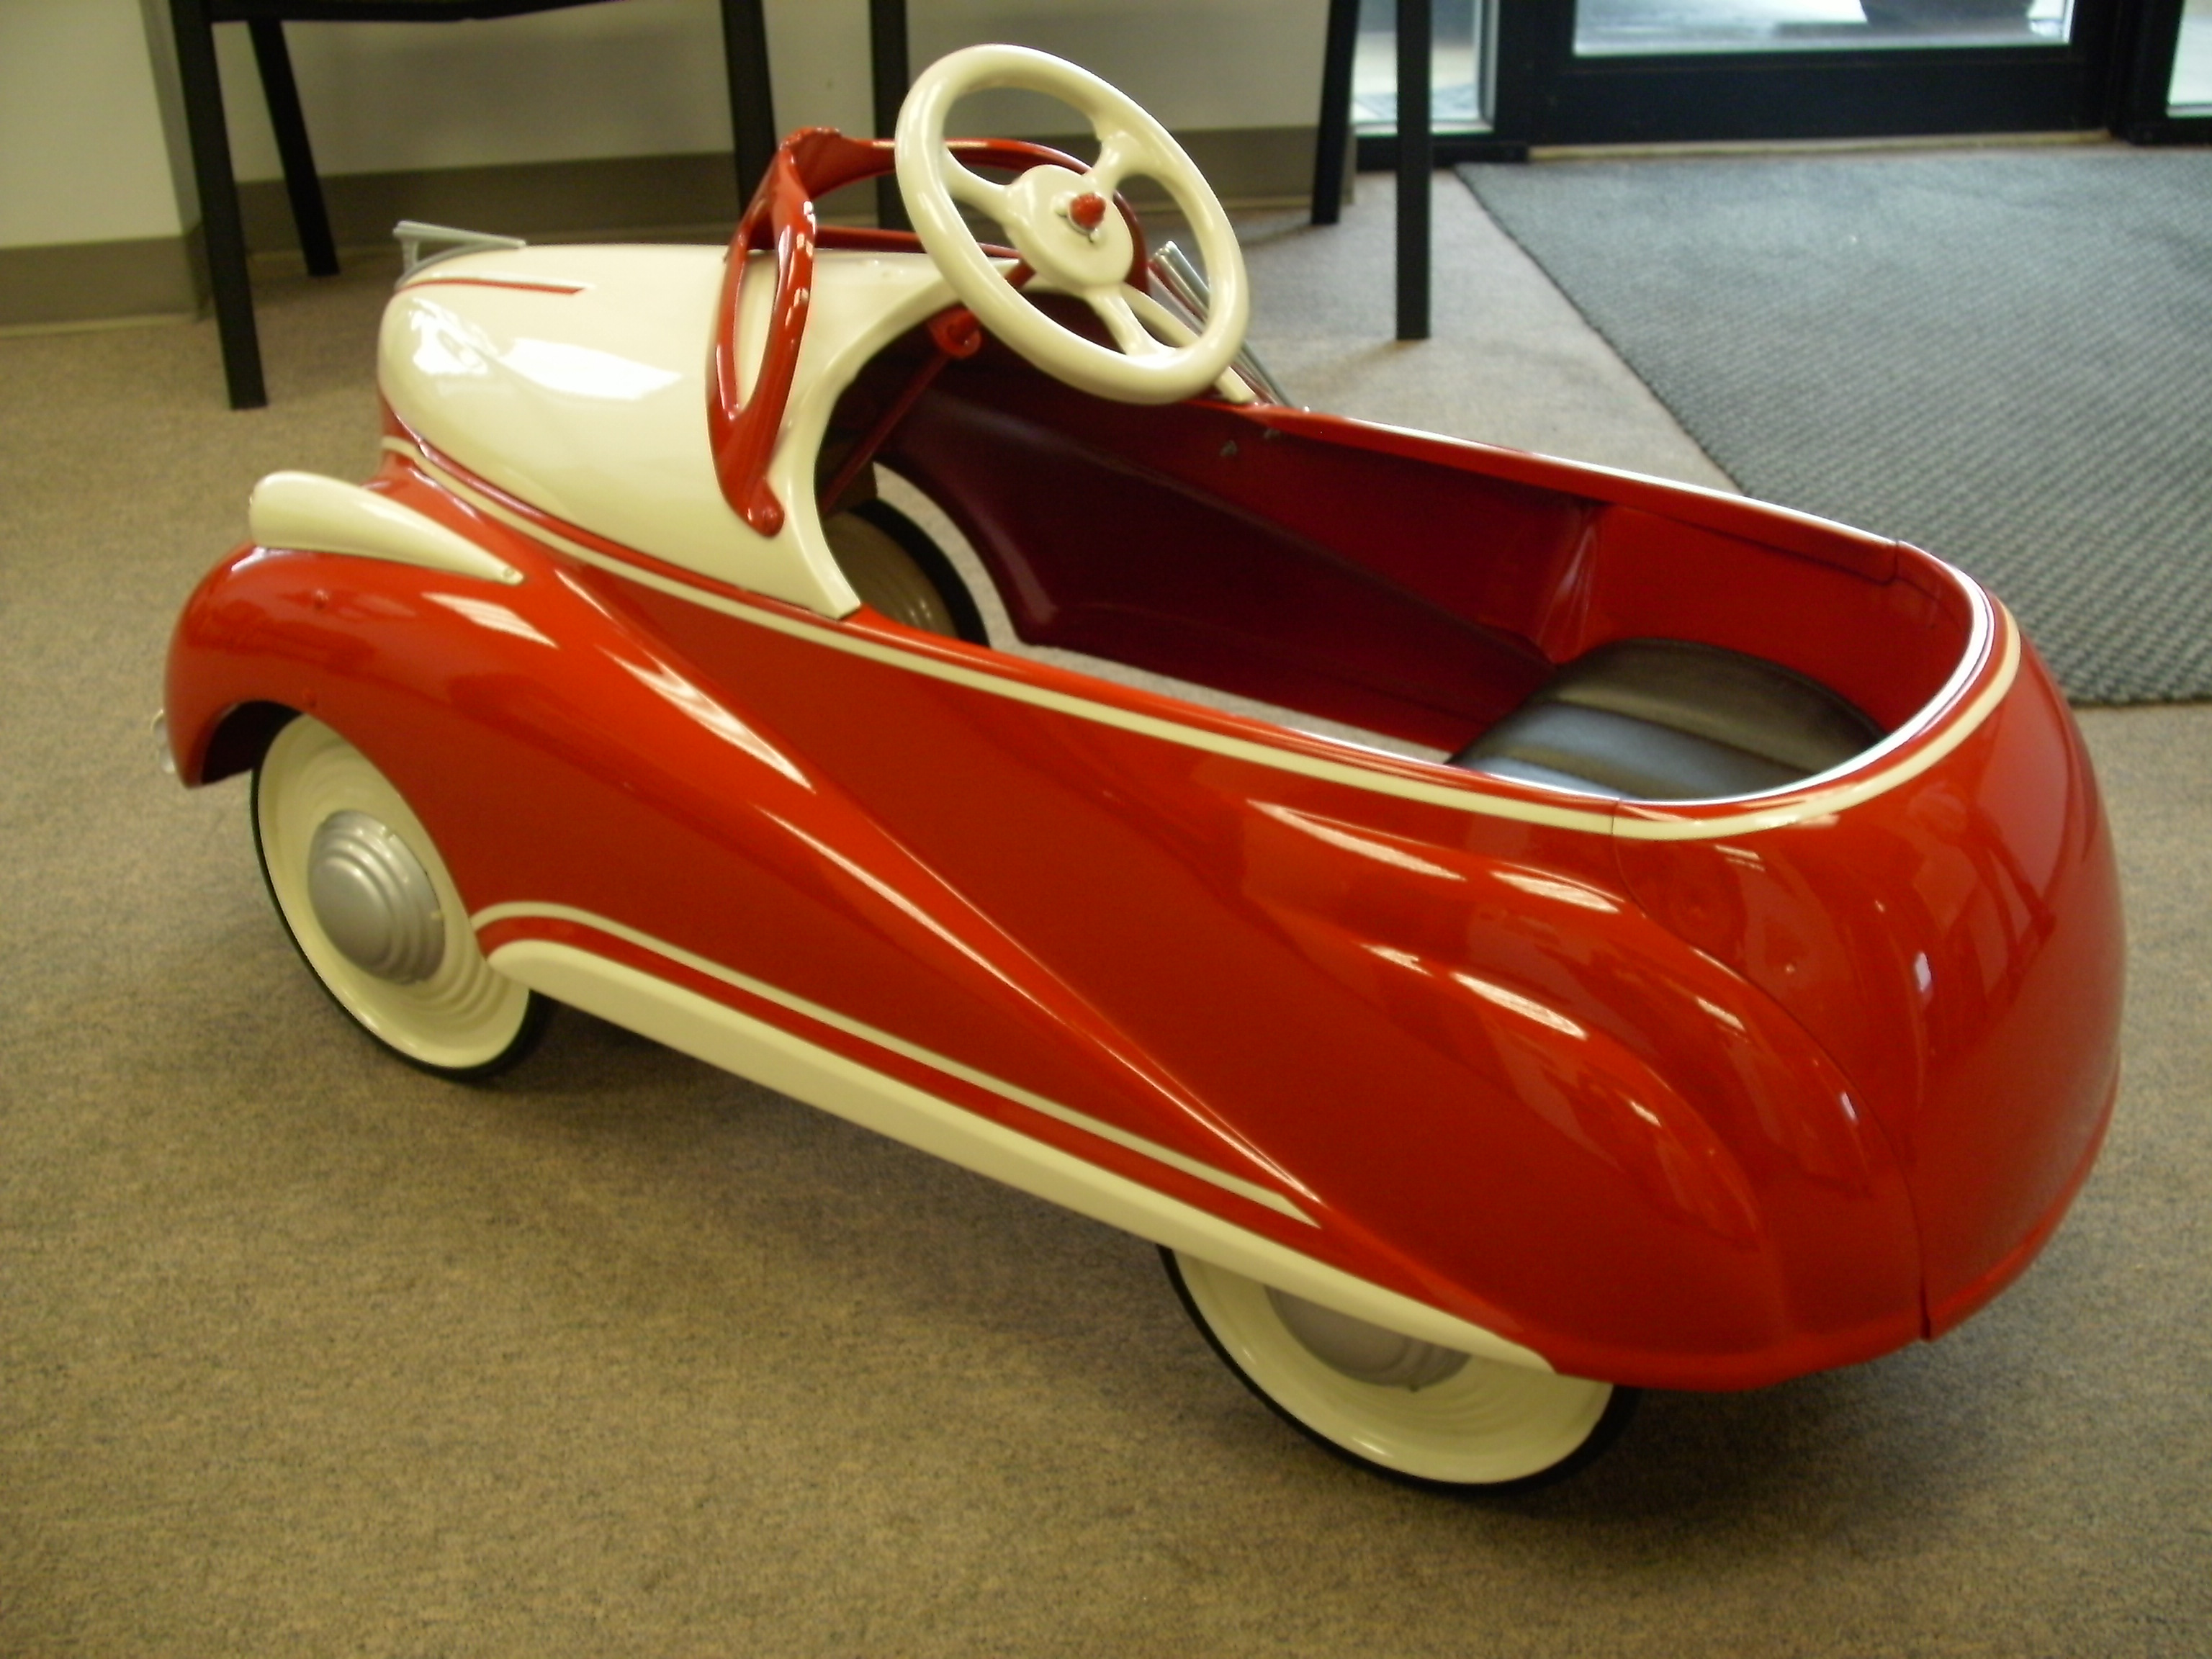 Pedal Cars Withrow S Body Shop